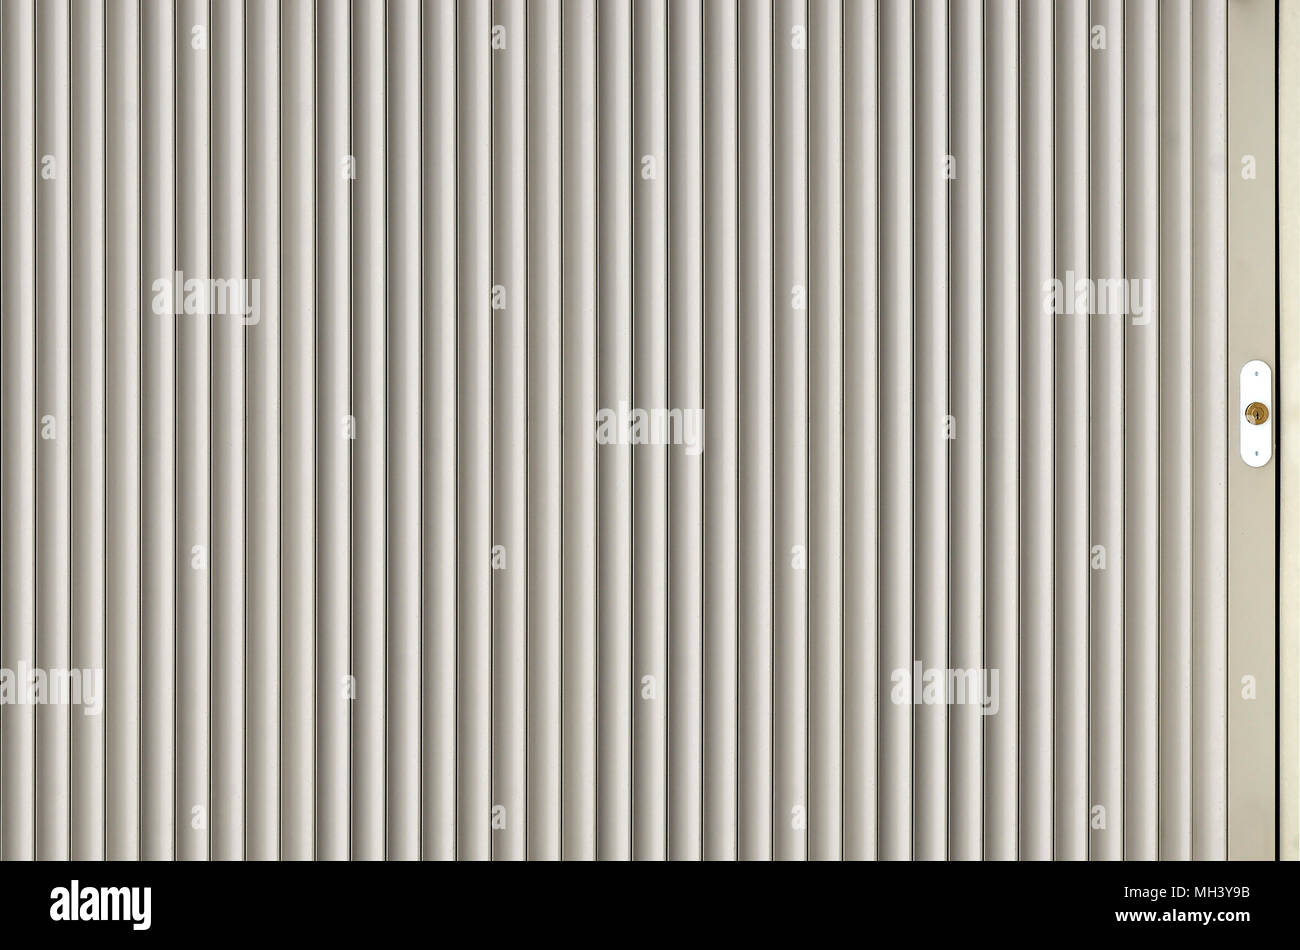 The Texture Of The Shutter Door Or Window In Light Gray Color. Metal Gates  Or Shutters For Garage Or Shop, Metal Sheet Texture, Steel Rolling Shutter